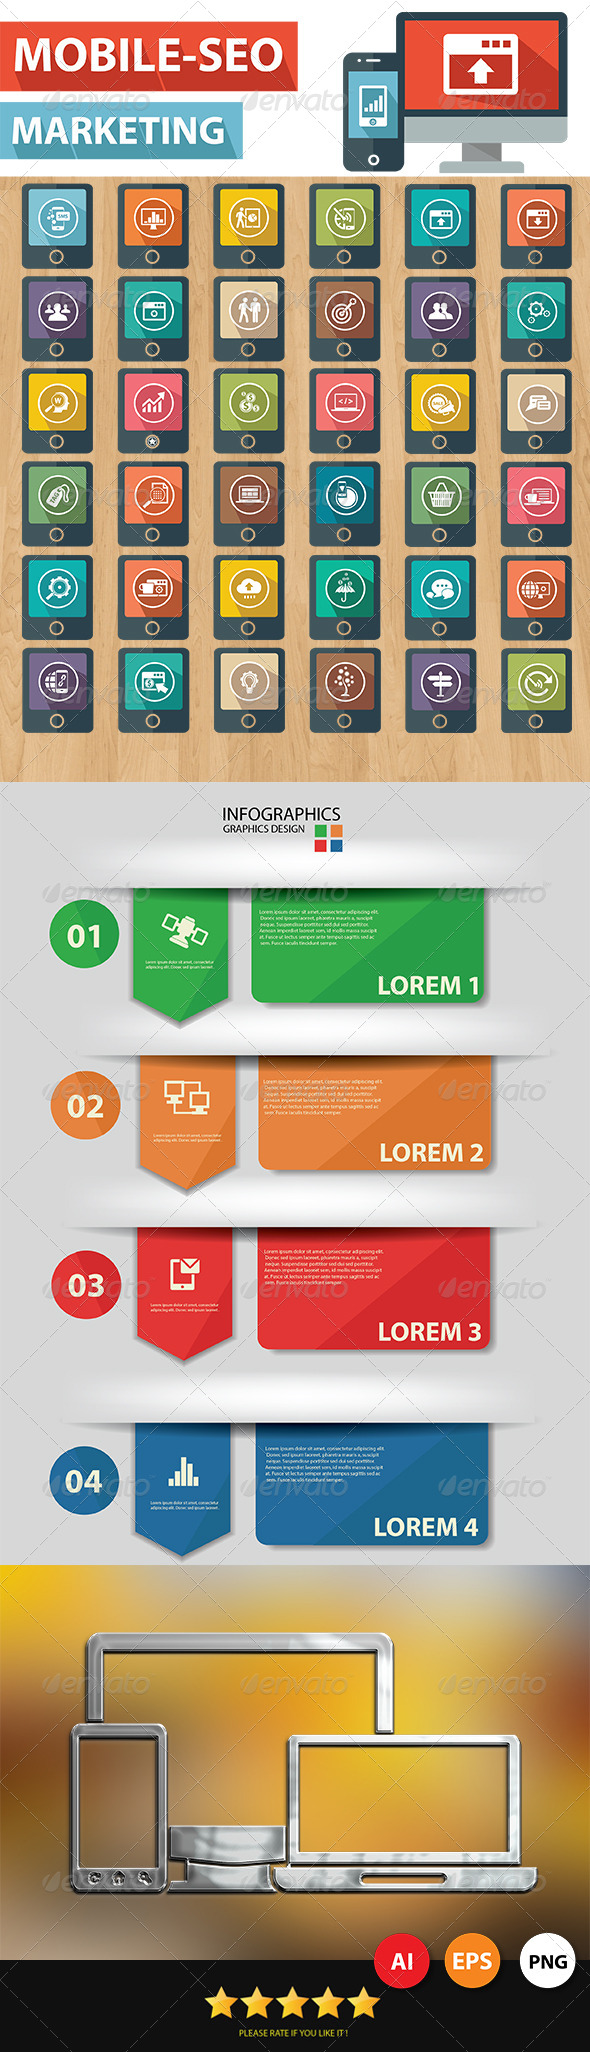 GraphicRiver Mobile-SEO Icons 6858019